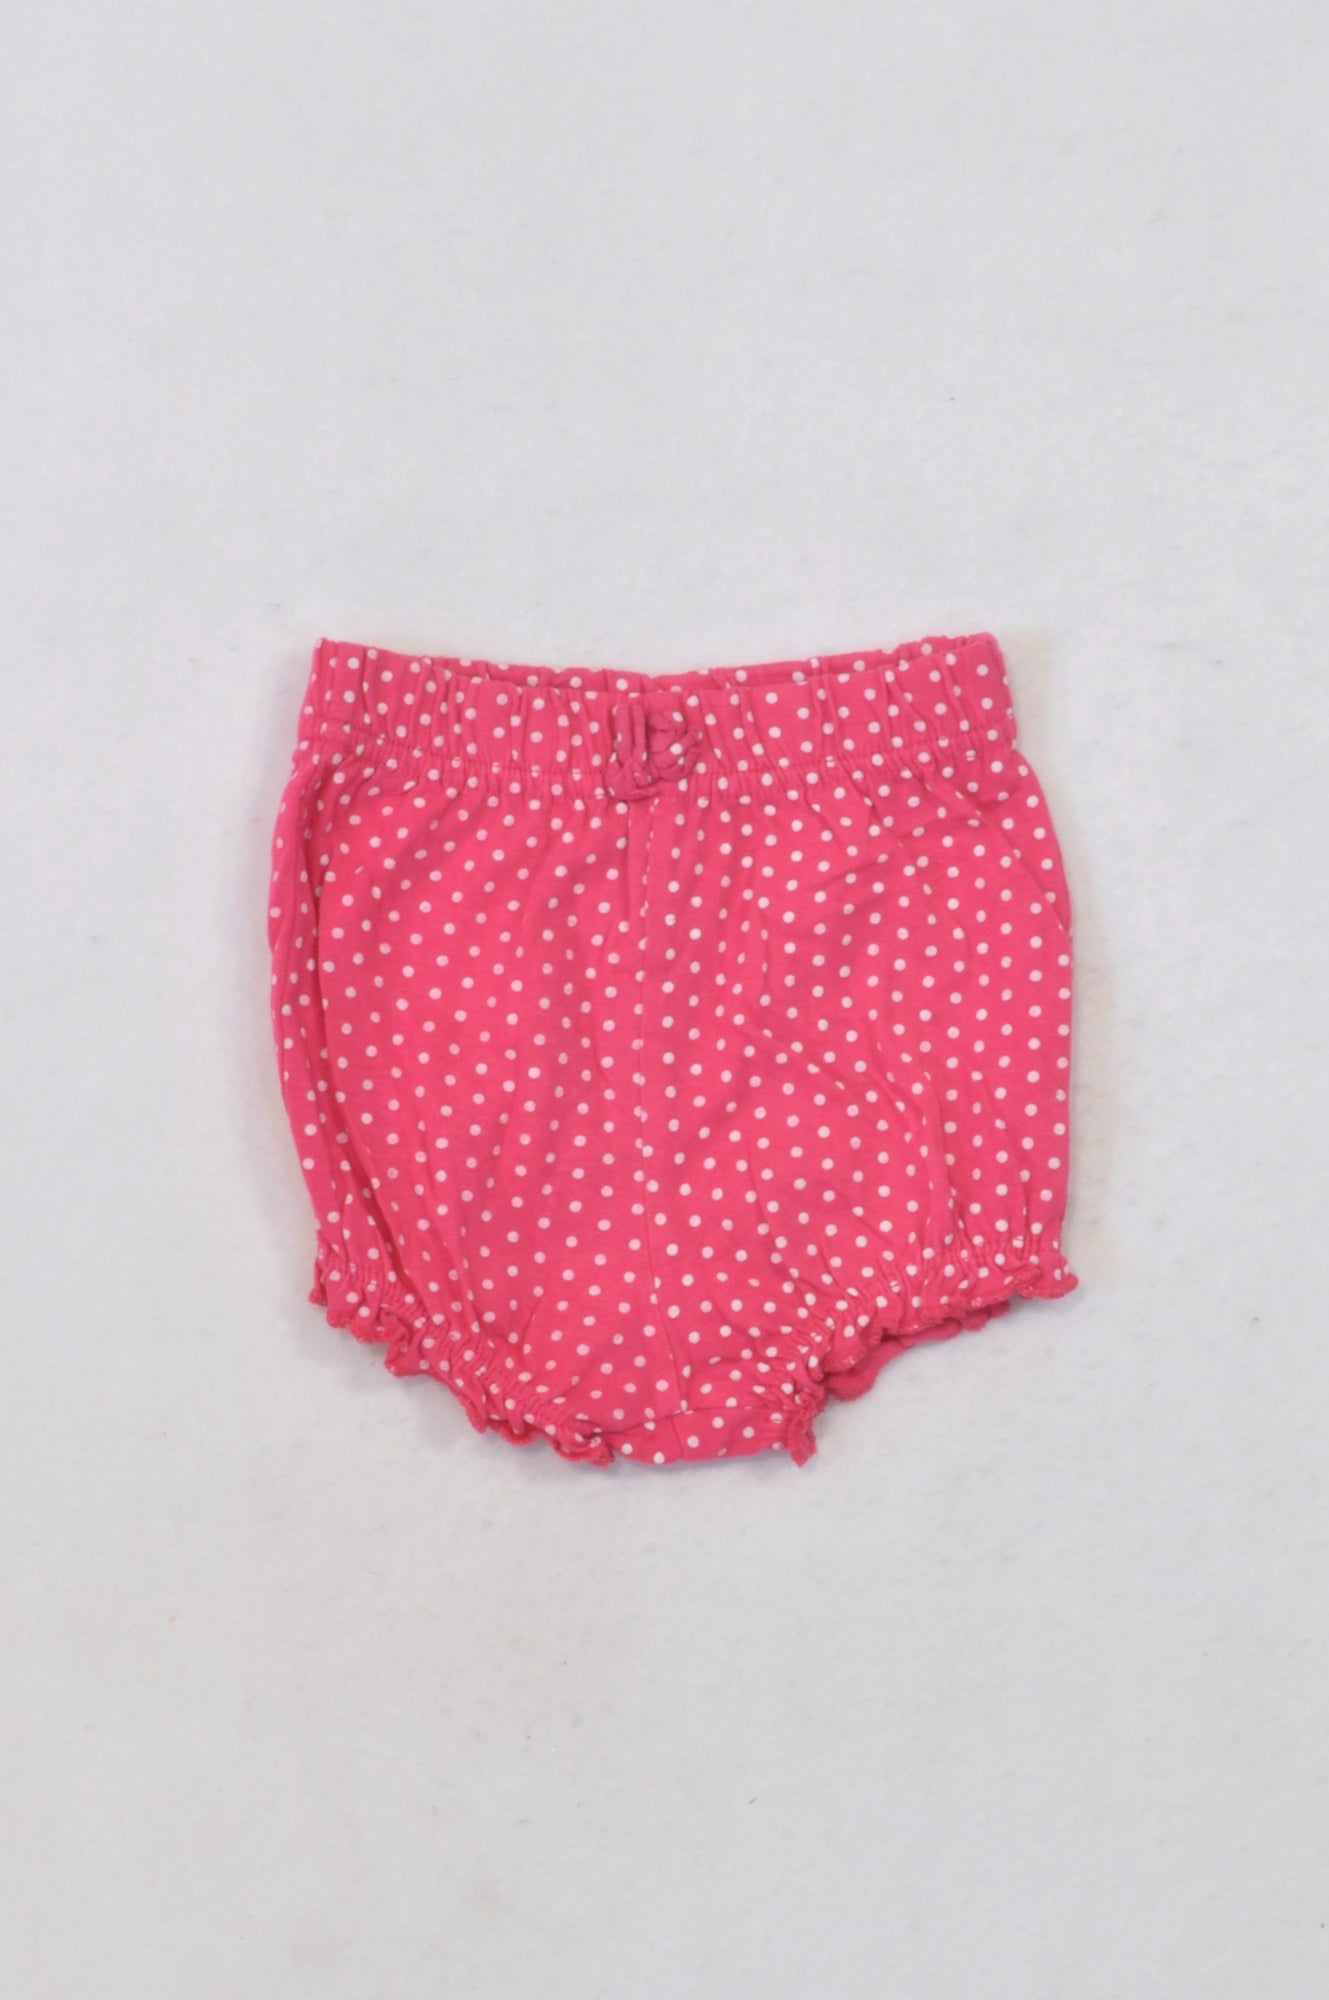 Ackermans Cerise & White Polkadot Bloomers Girls 3-6 months